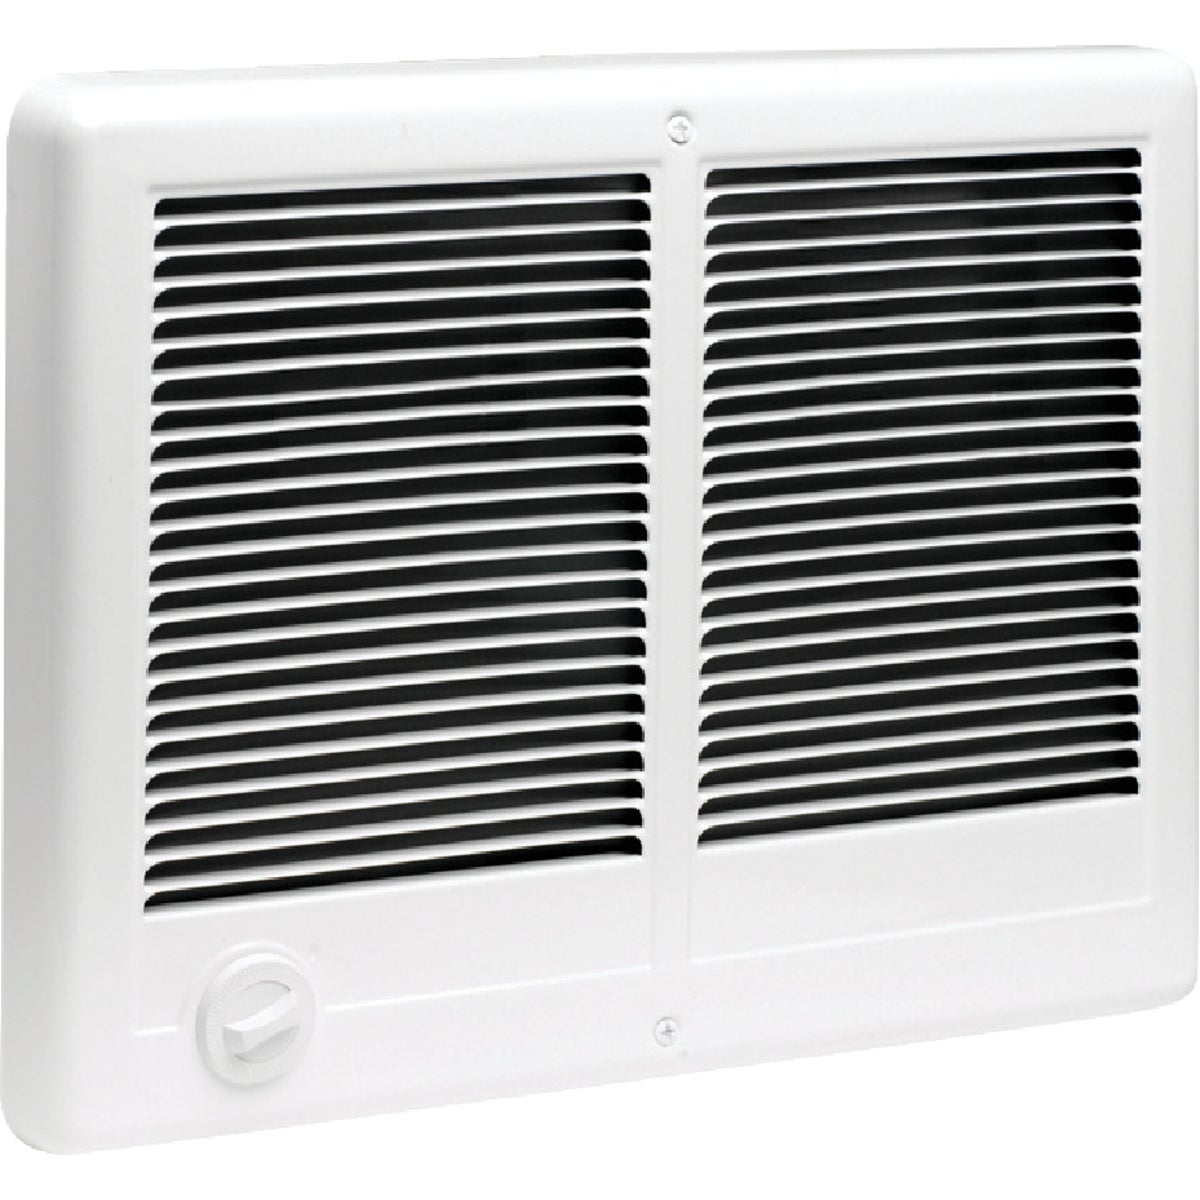 IN-WALL FAN HEATER